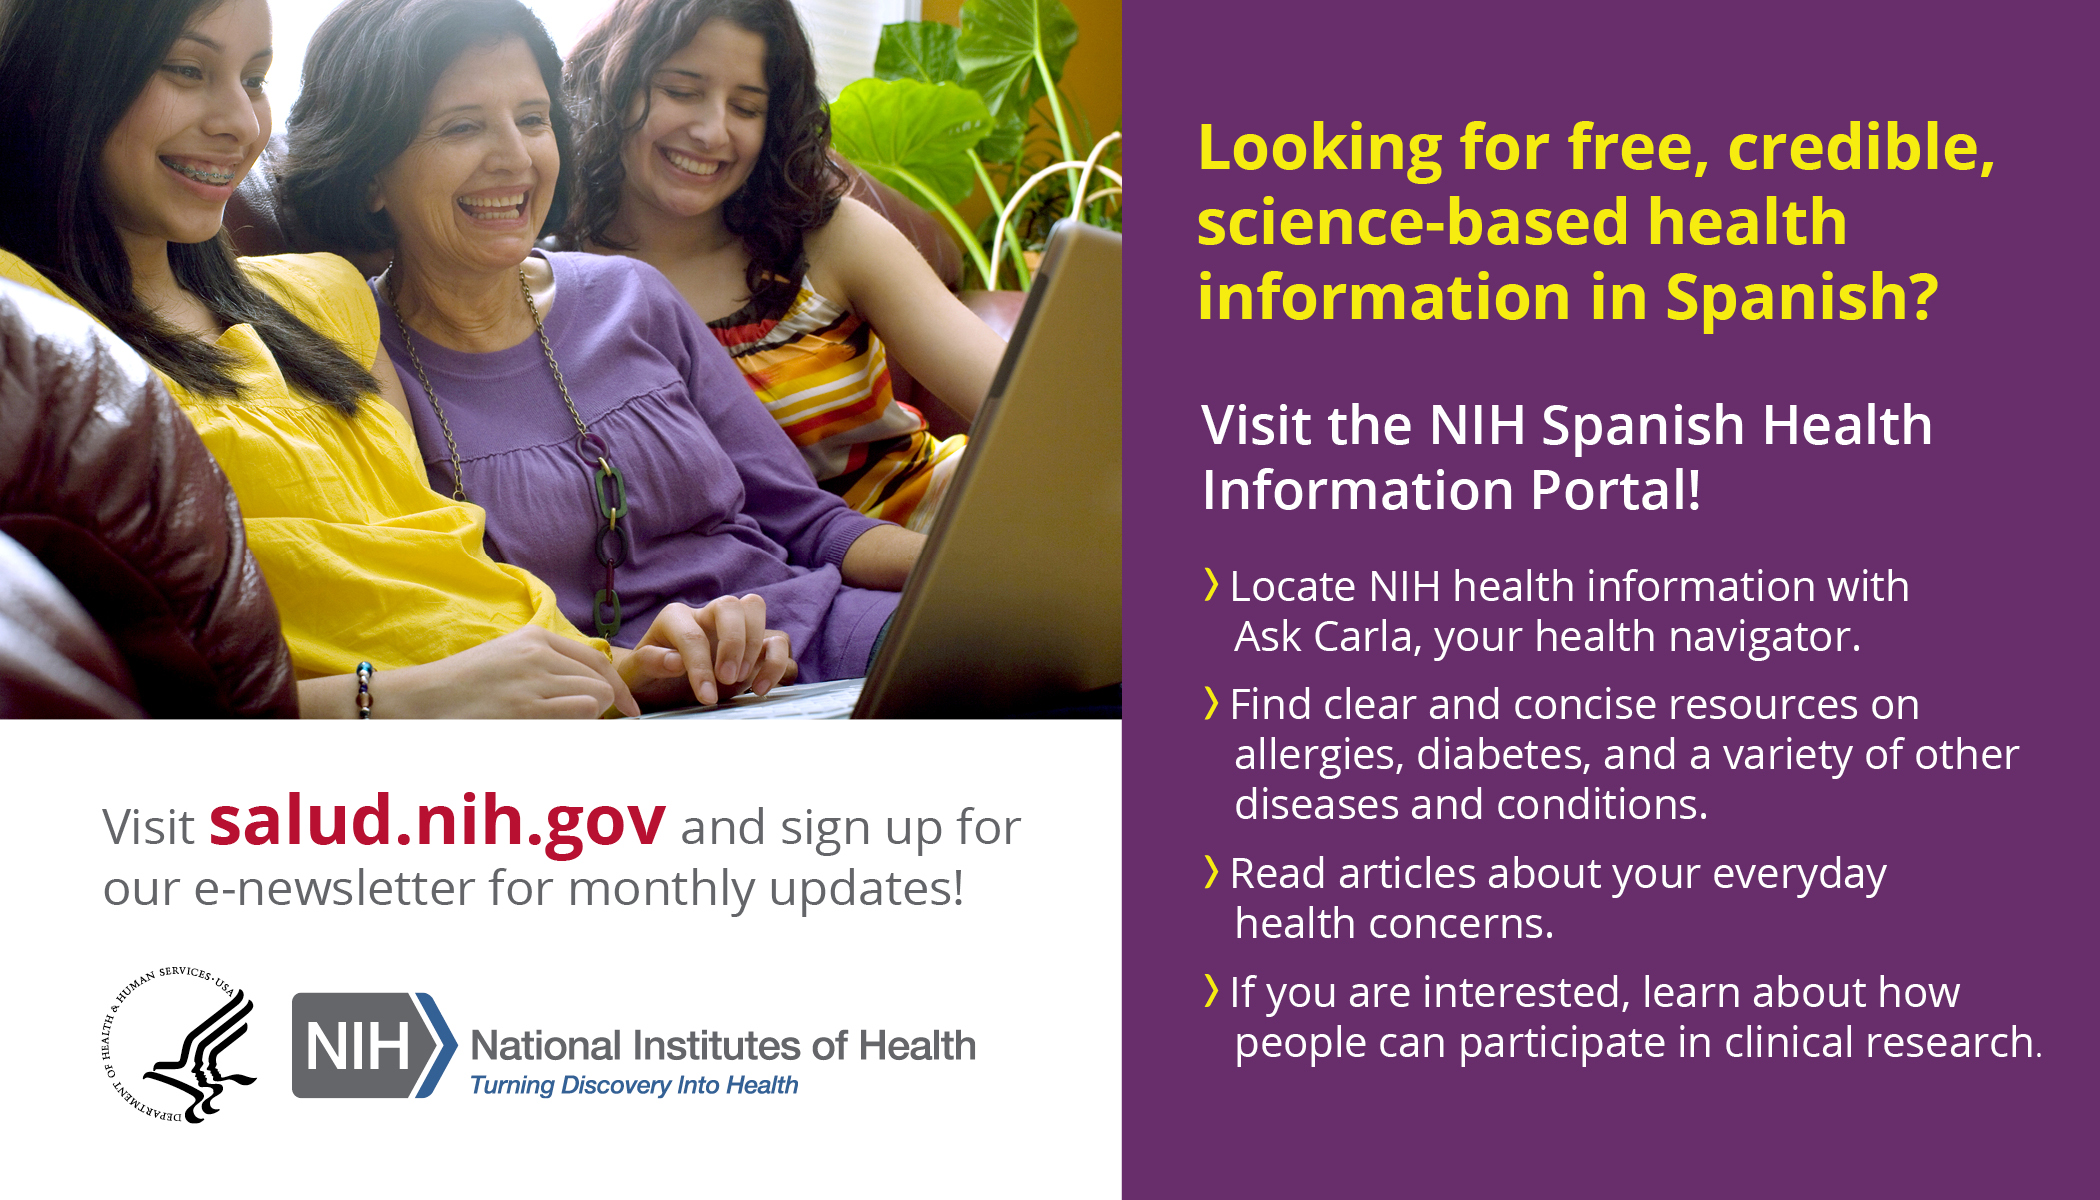 Looking for free, credible, science-based health information in Spanish?